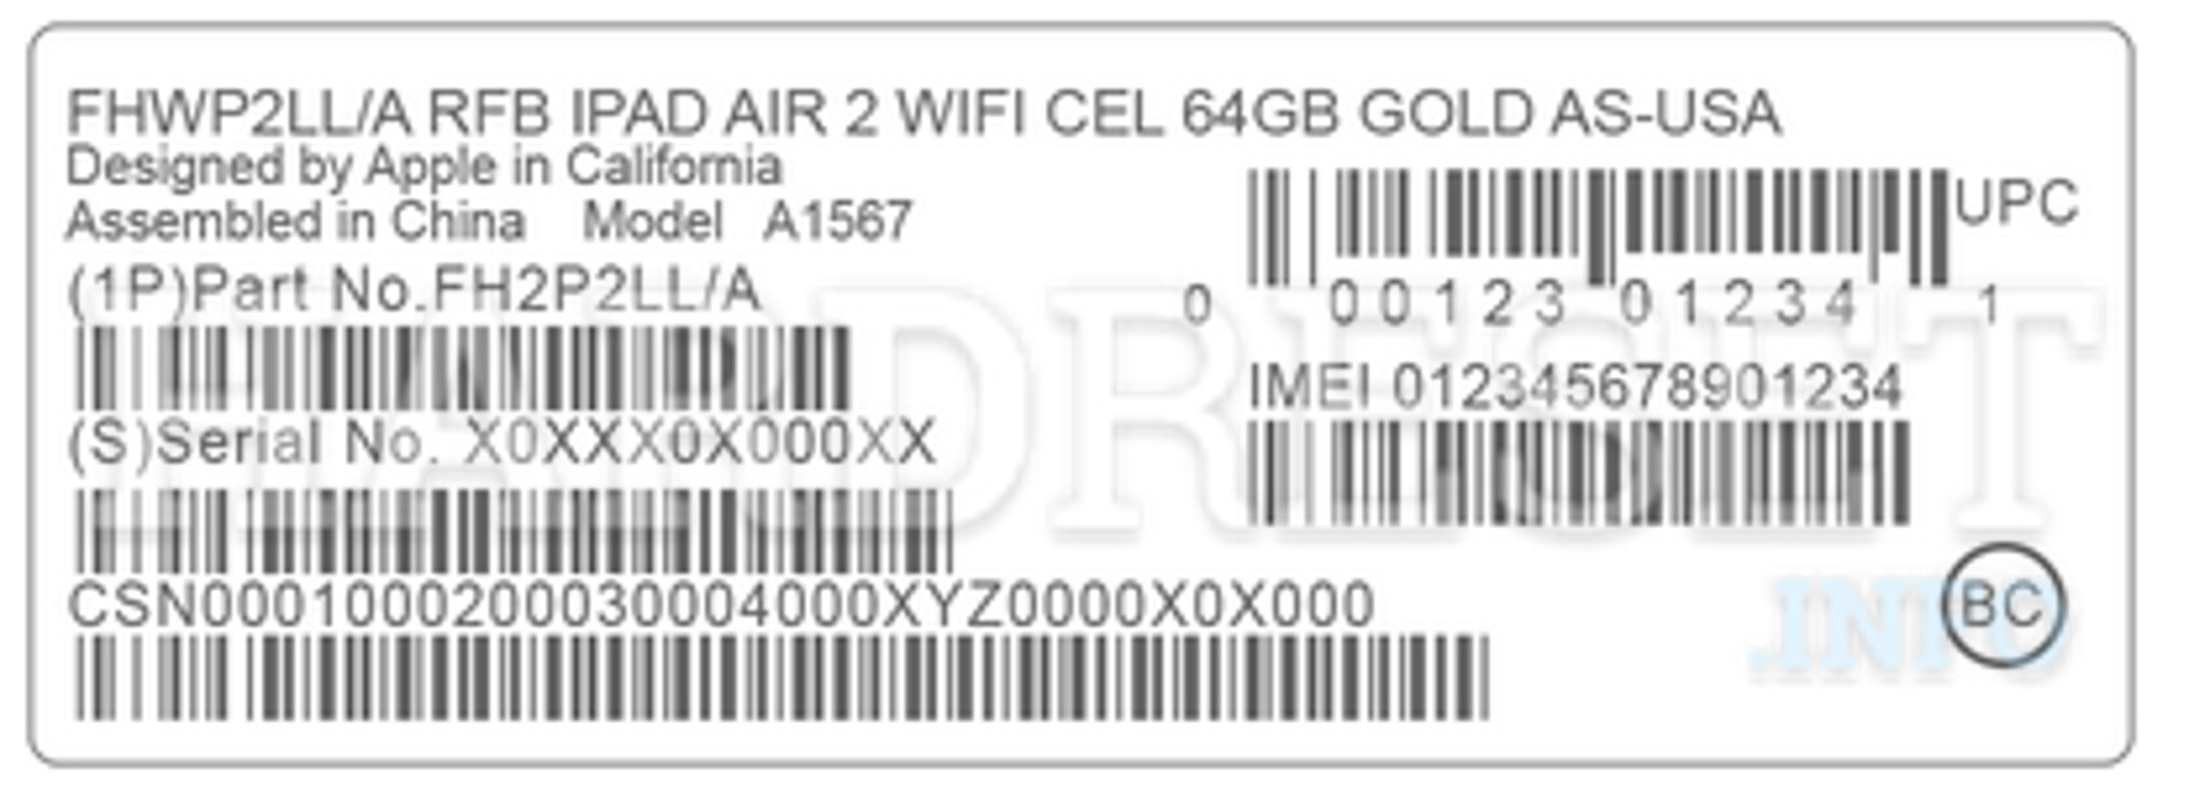 find apple serial number with imei